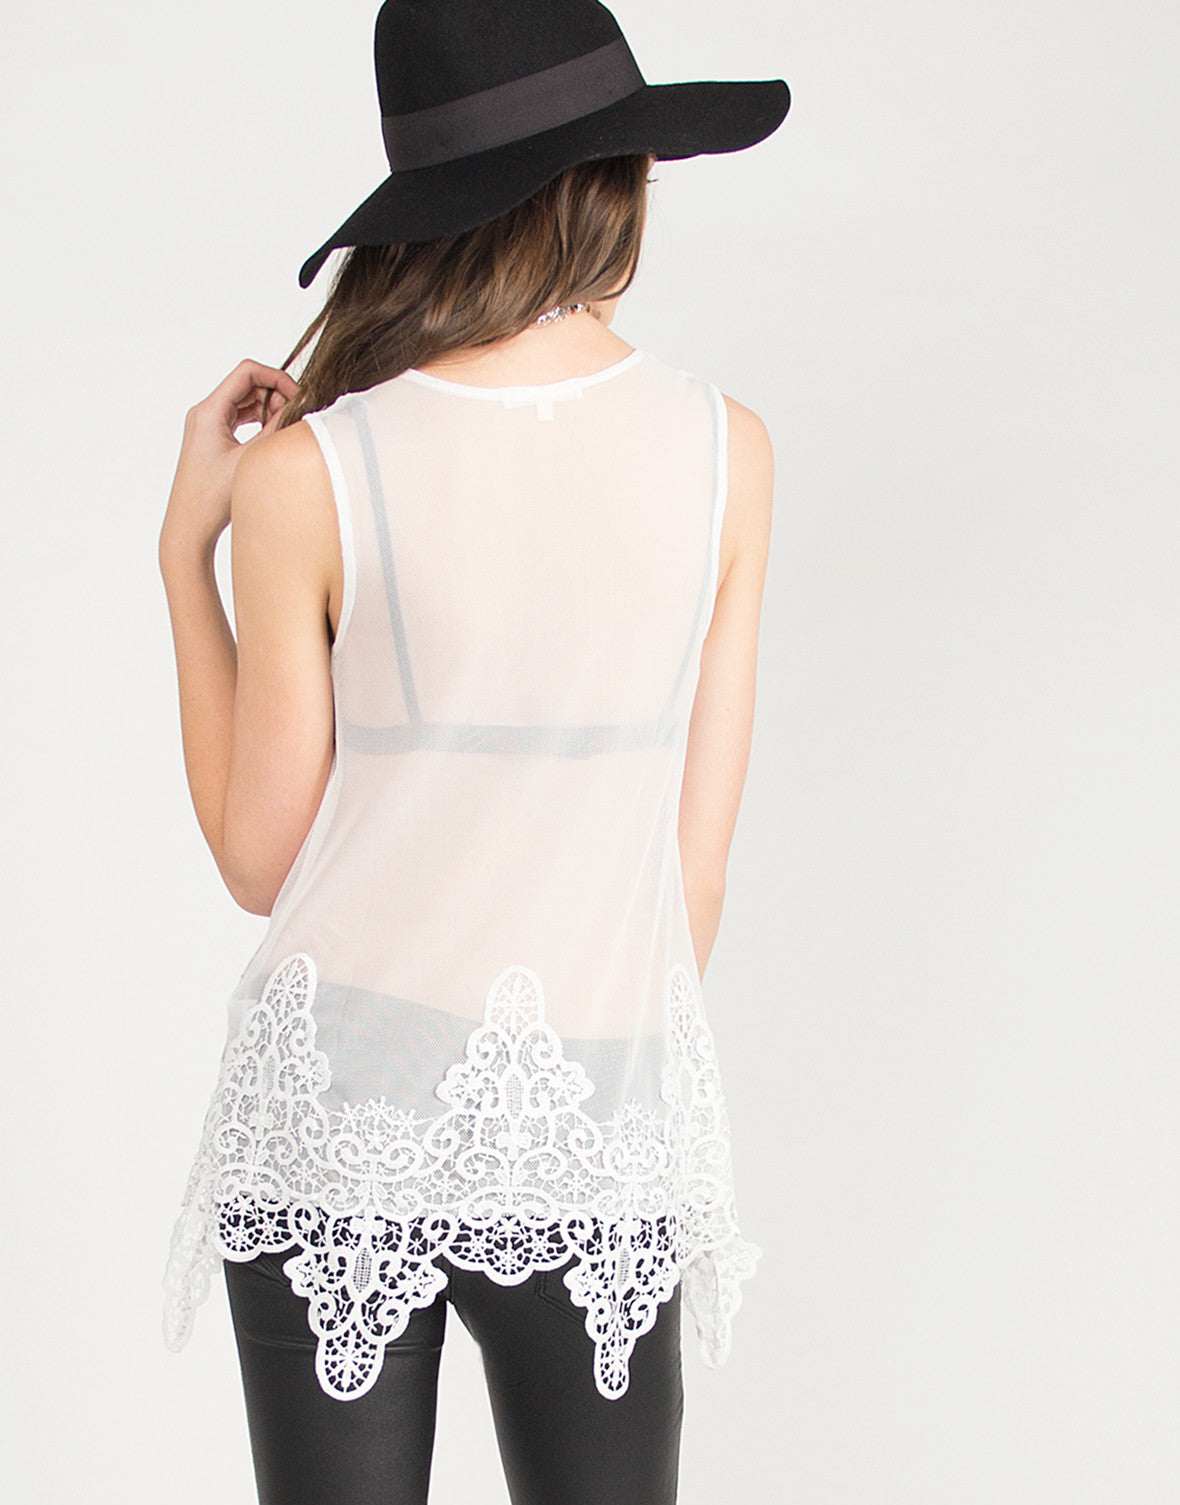 Flowy Crochet and Mesh Top - White